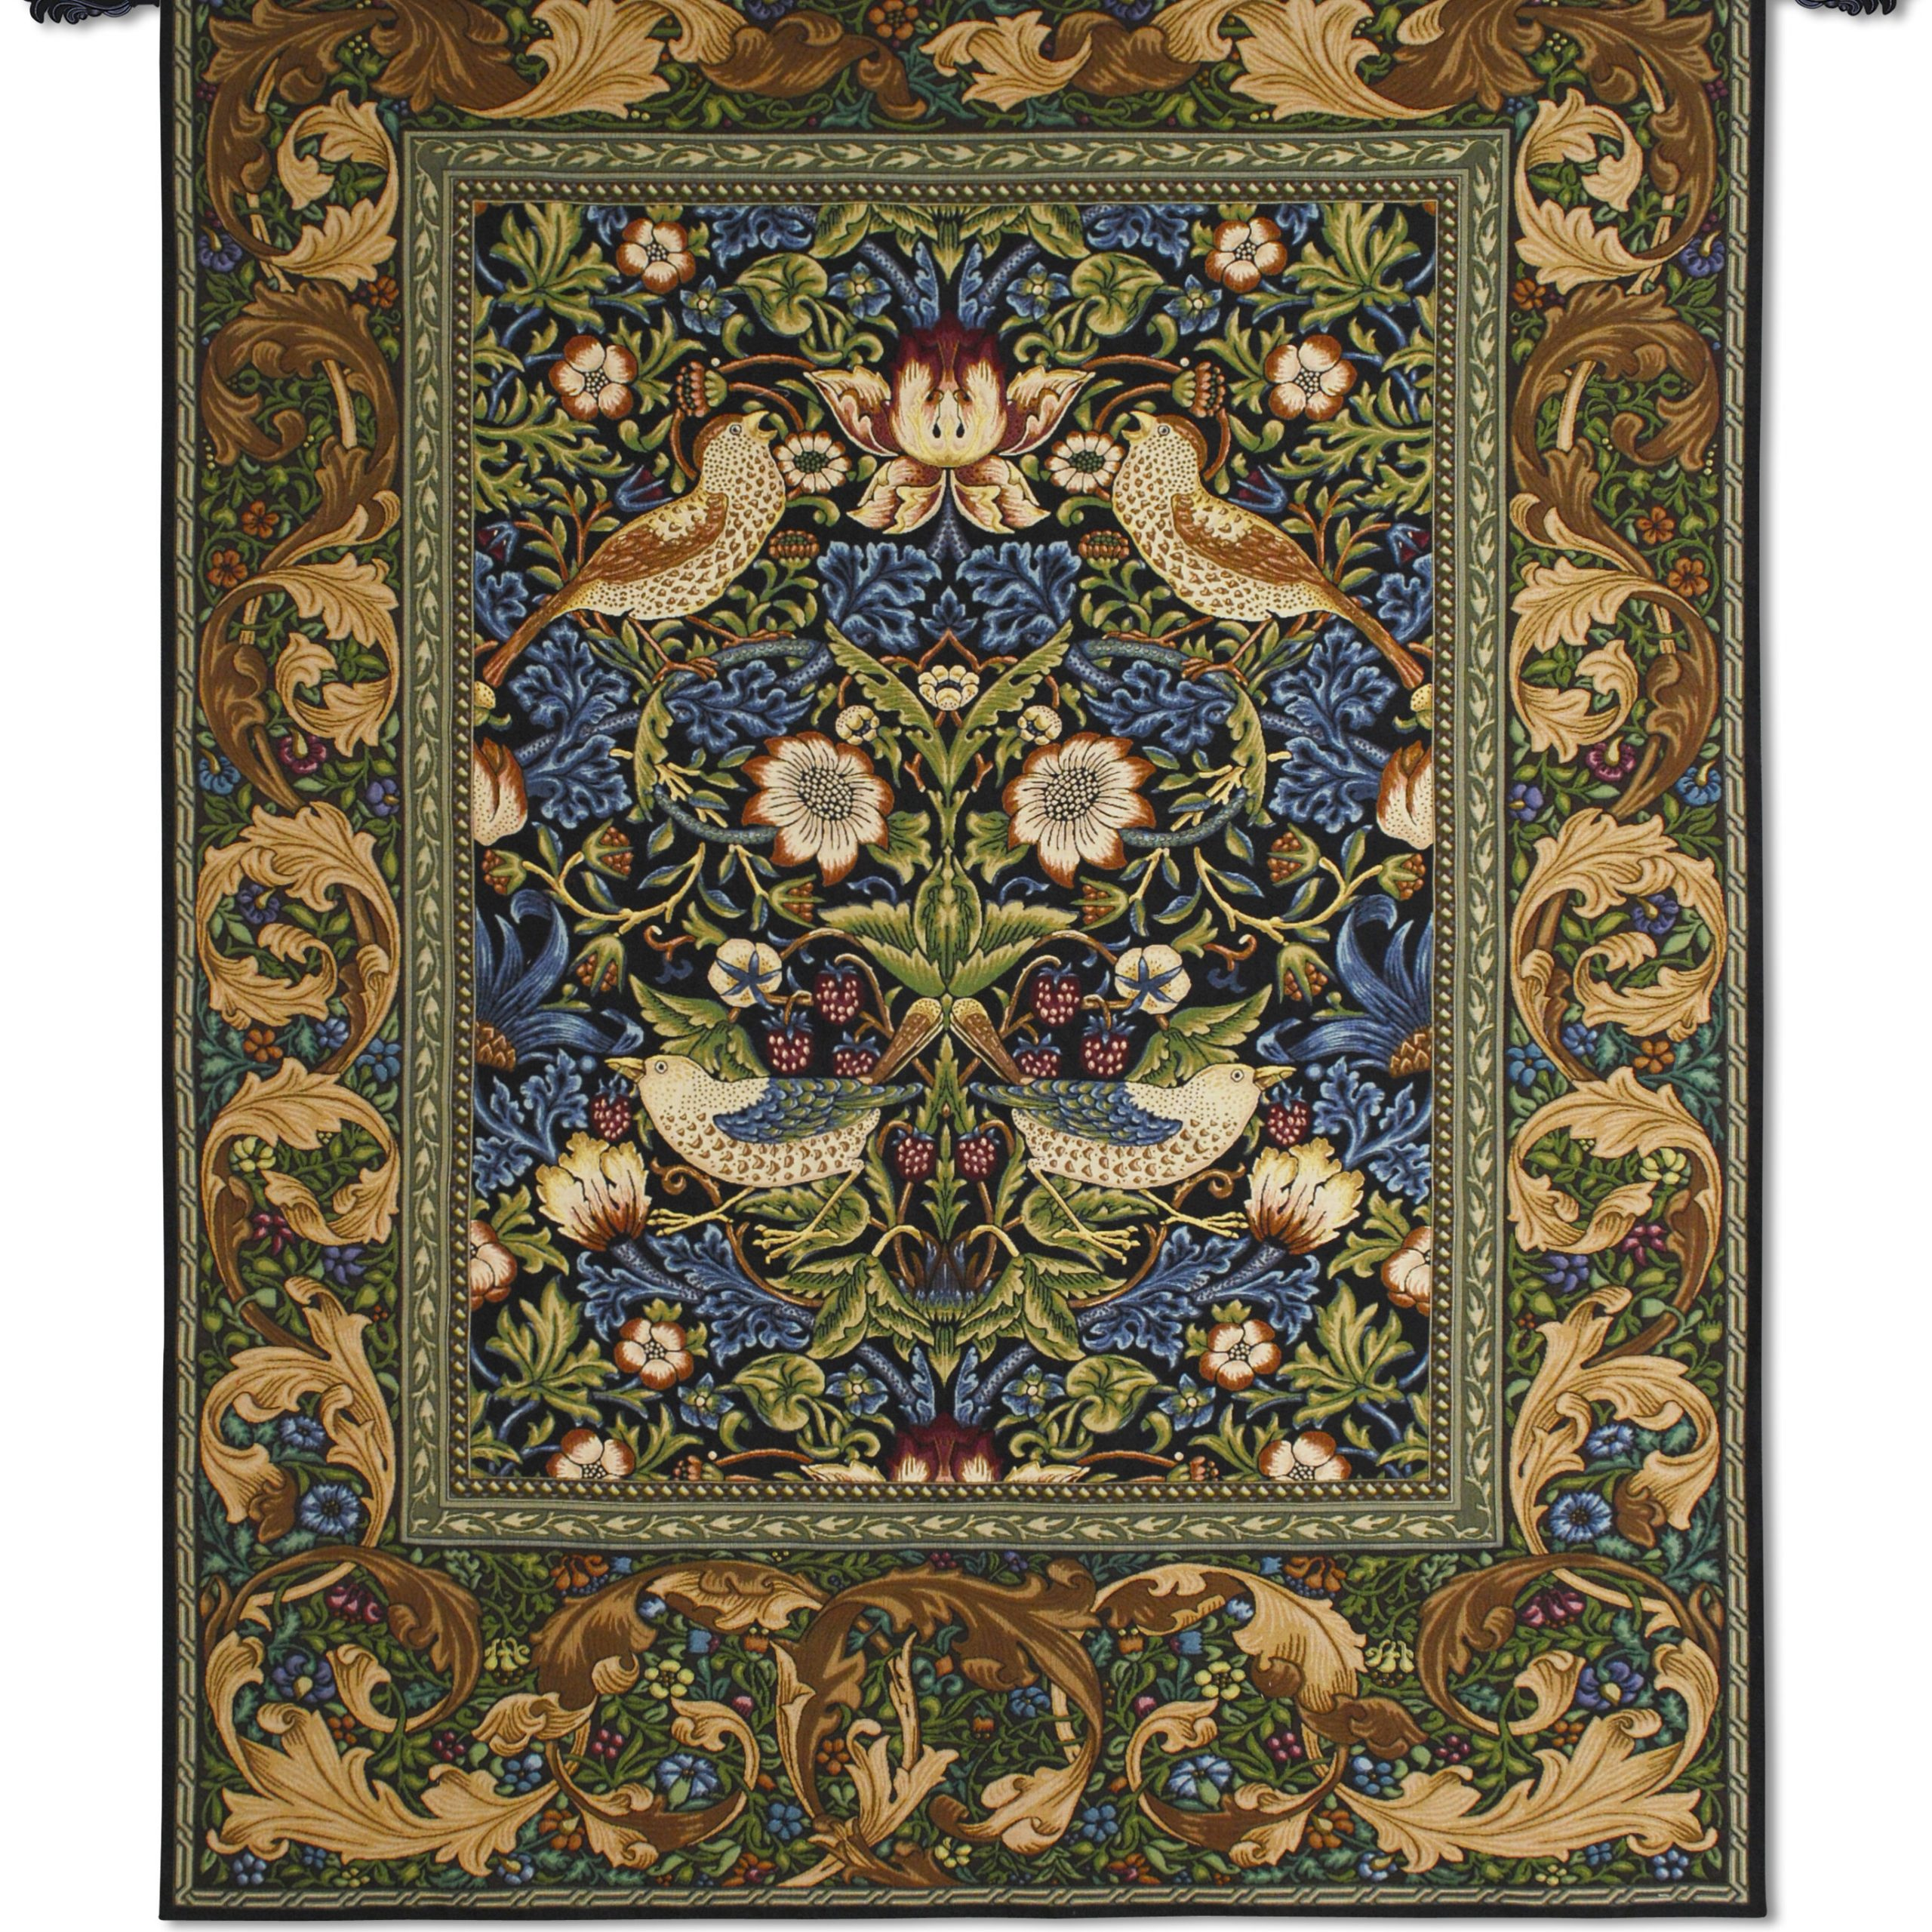 Strawberry Thiefwilliam Morris Tapestry Intended For Most Popular Blended Fabric Breeze Of Admiration Woven Tapestries (View 3 of 20)